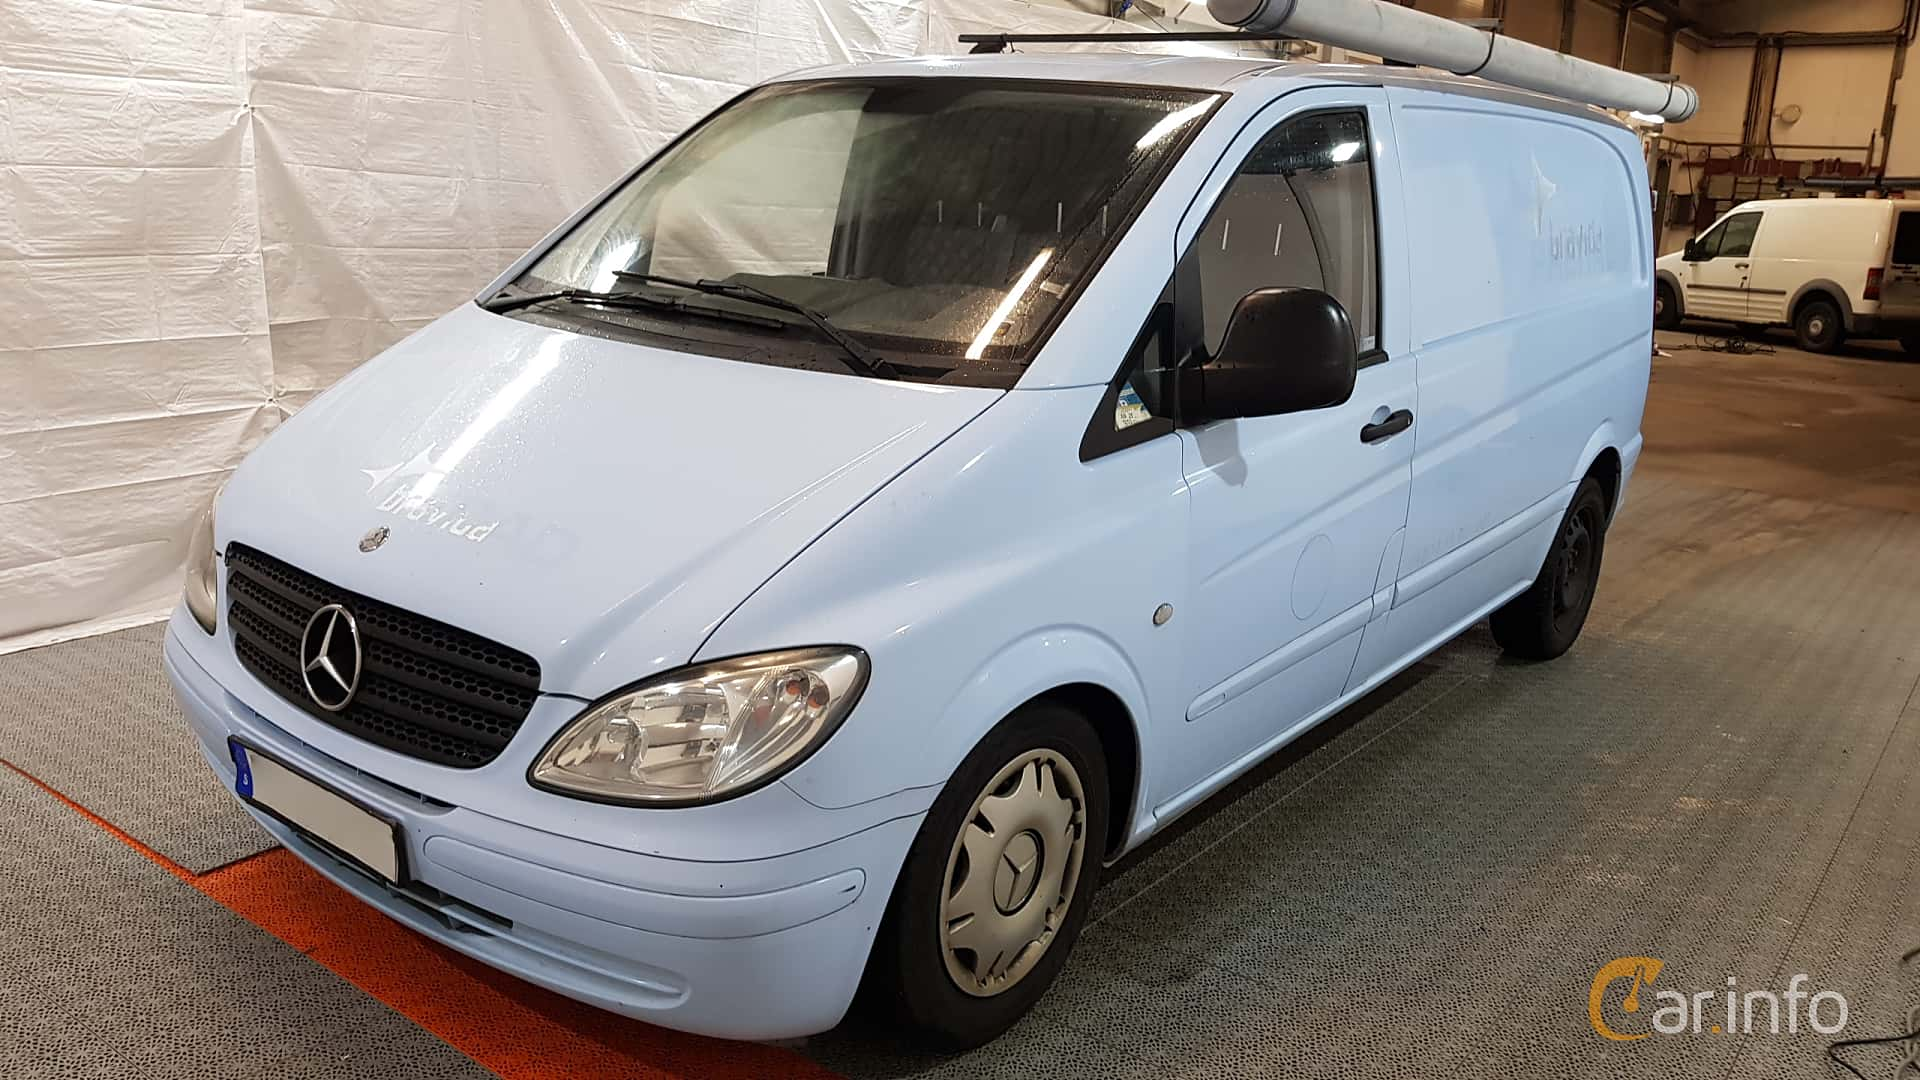 6 images of mercedes benz vito 109 cdi 2 2 manual 95hp 2008 by rh car info mercedes vito 109 cdi manual pdf Mercedes Vito 9 Seater